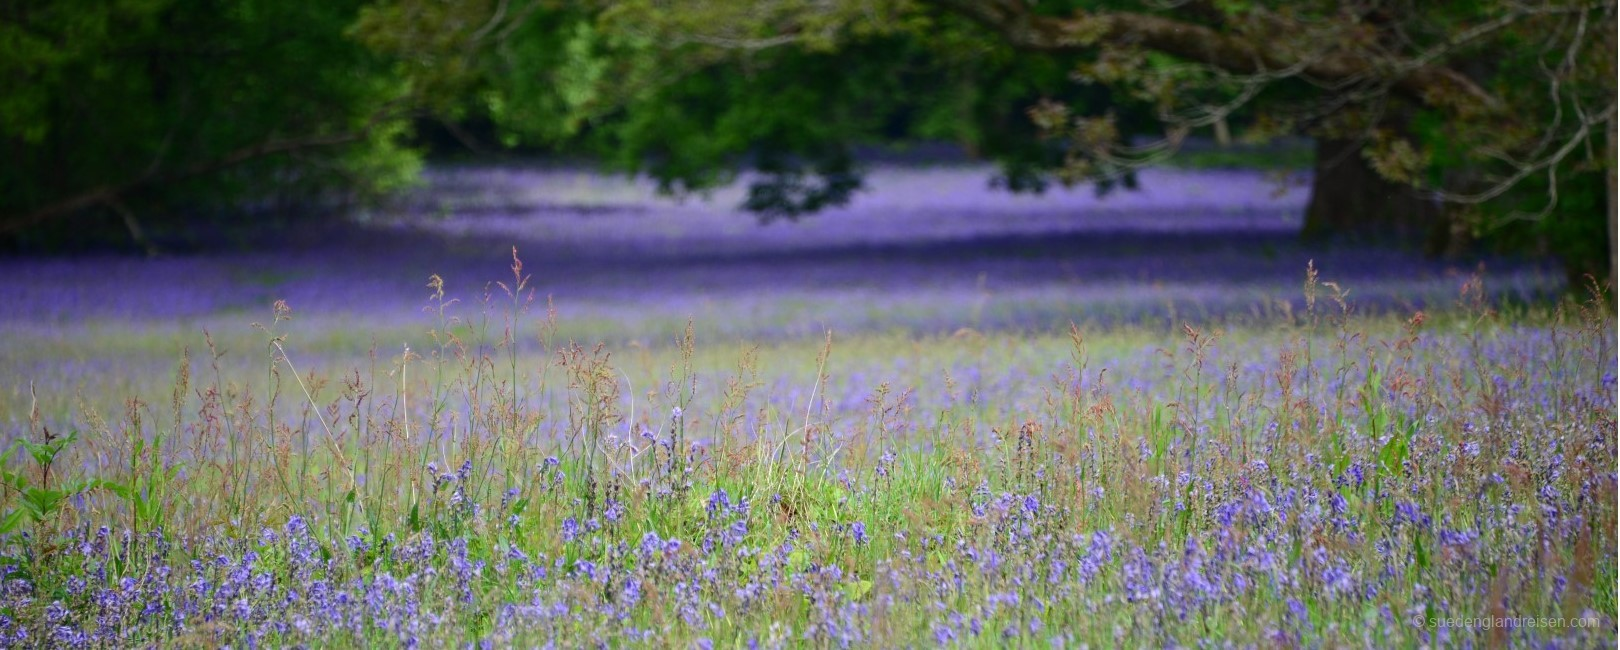 Bluebell field in Enys gardens